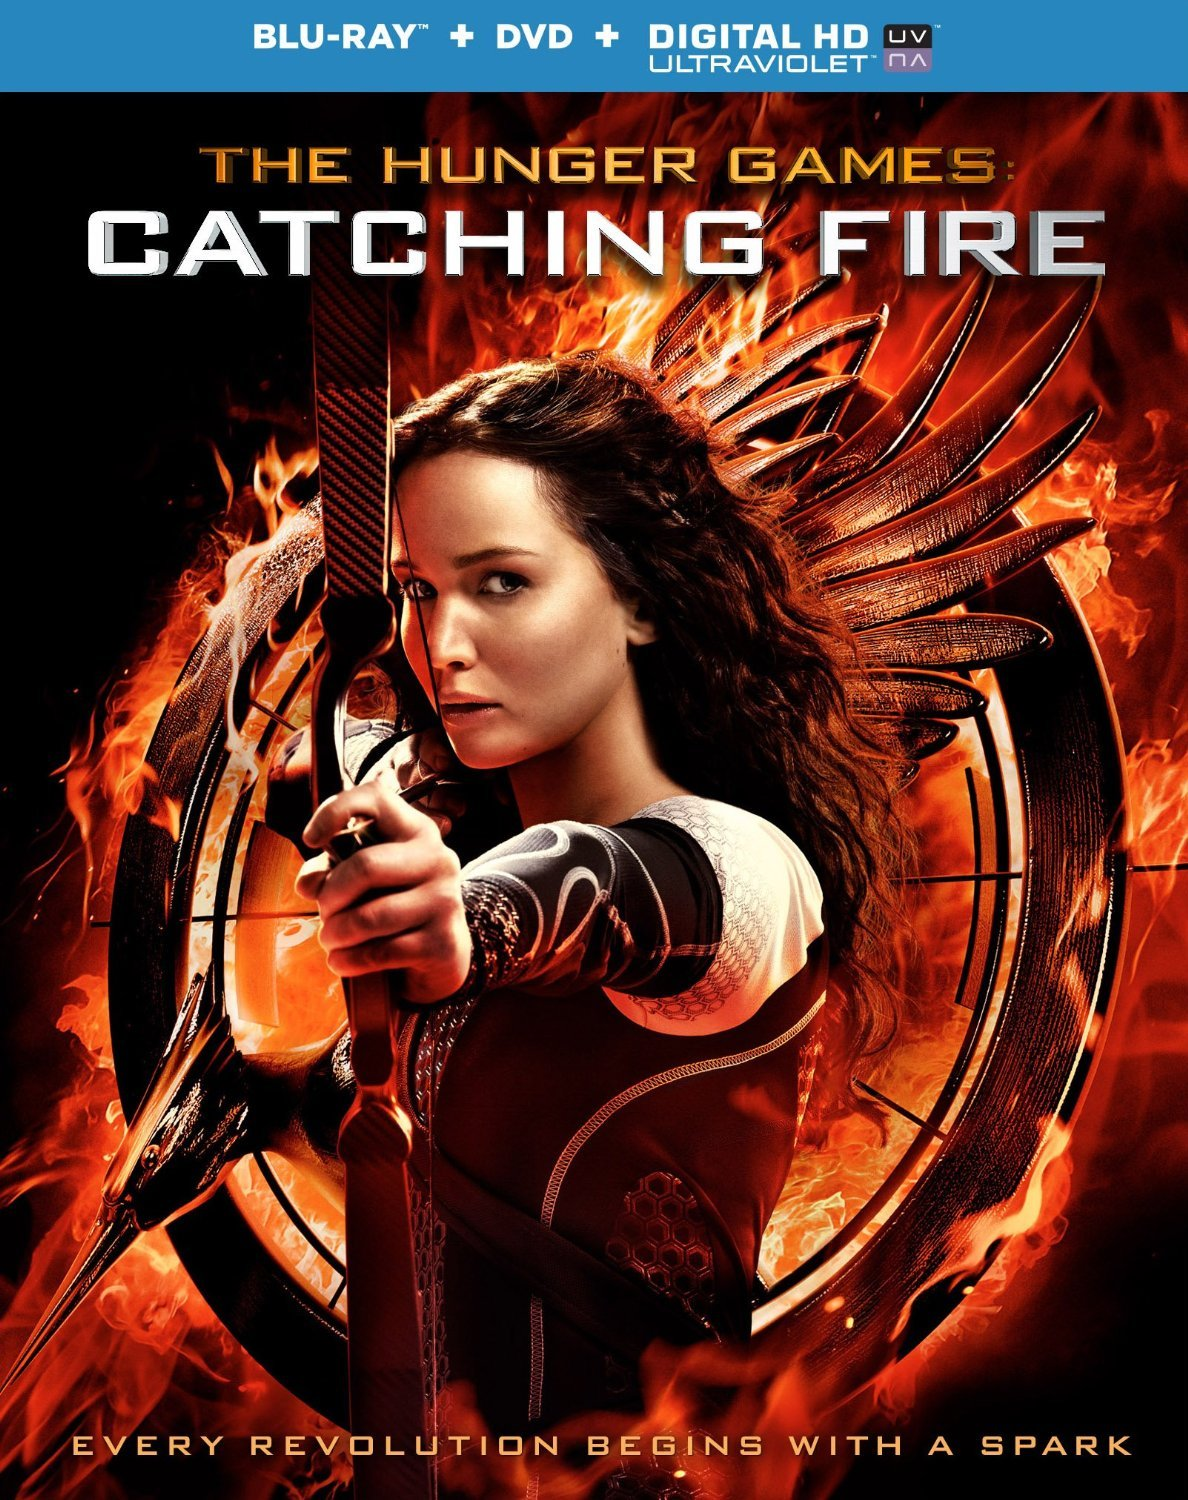 The Hunger Games Catching Fire Defeating the Competion on Home Release The Hunger Games: Catching Fire Defeating the Competion on Home Release